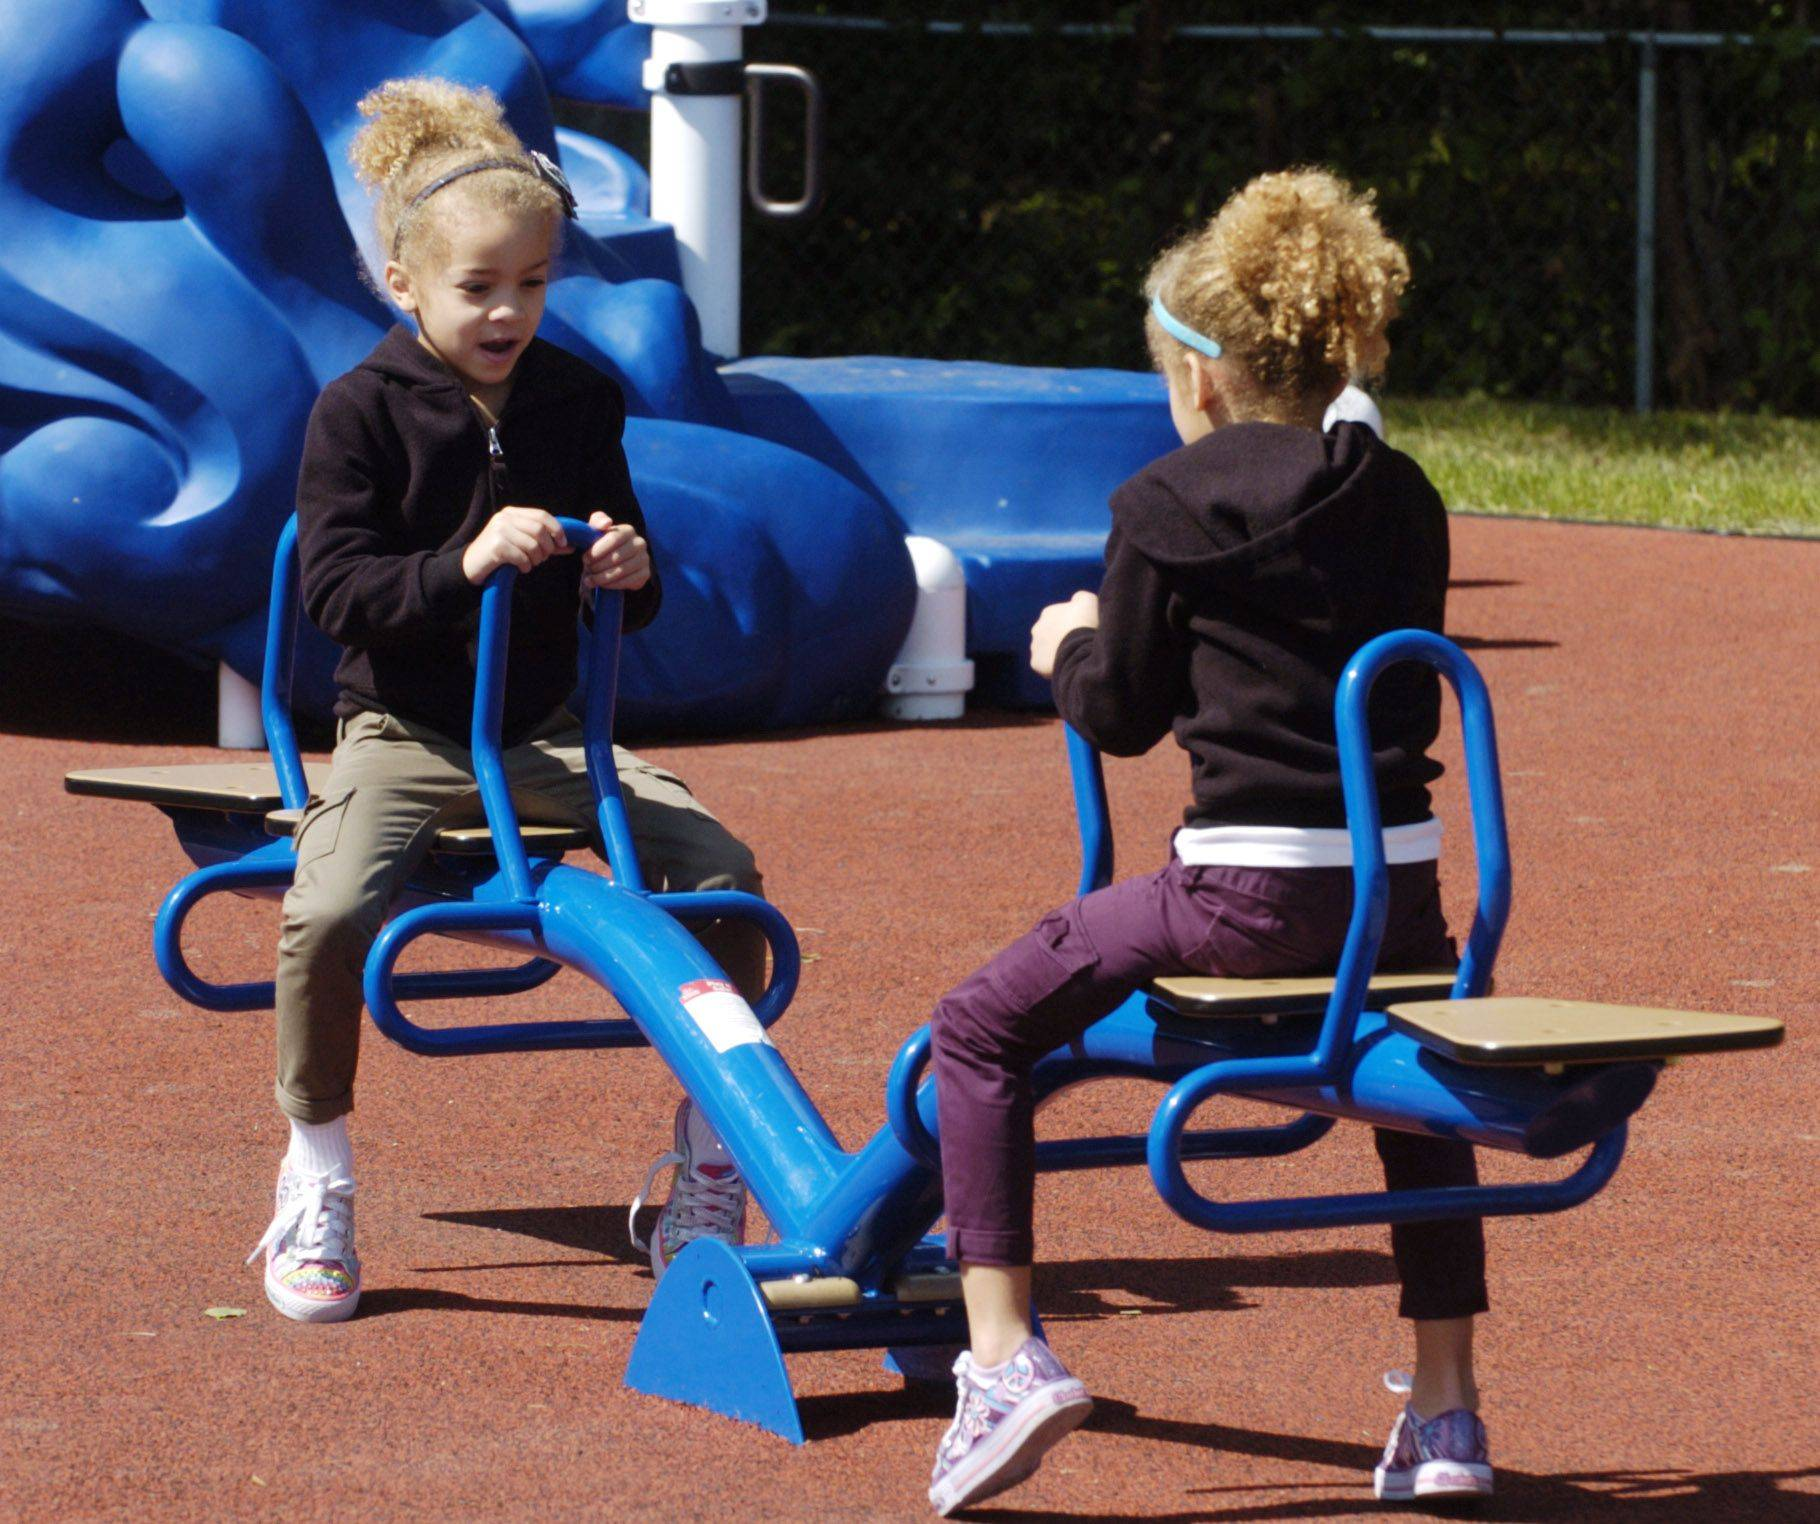 Twins Madeline, left, and Olivia Lawhorn, 5, of Vernon Hills play on the playground dedicated to the memory of Lexi Kazian at Alcott Park in Buffalo Grove Saturday.